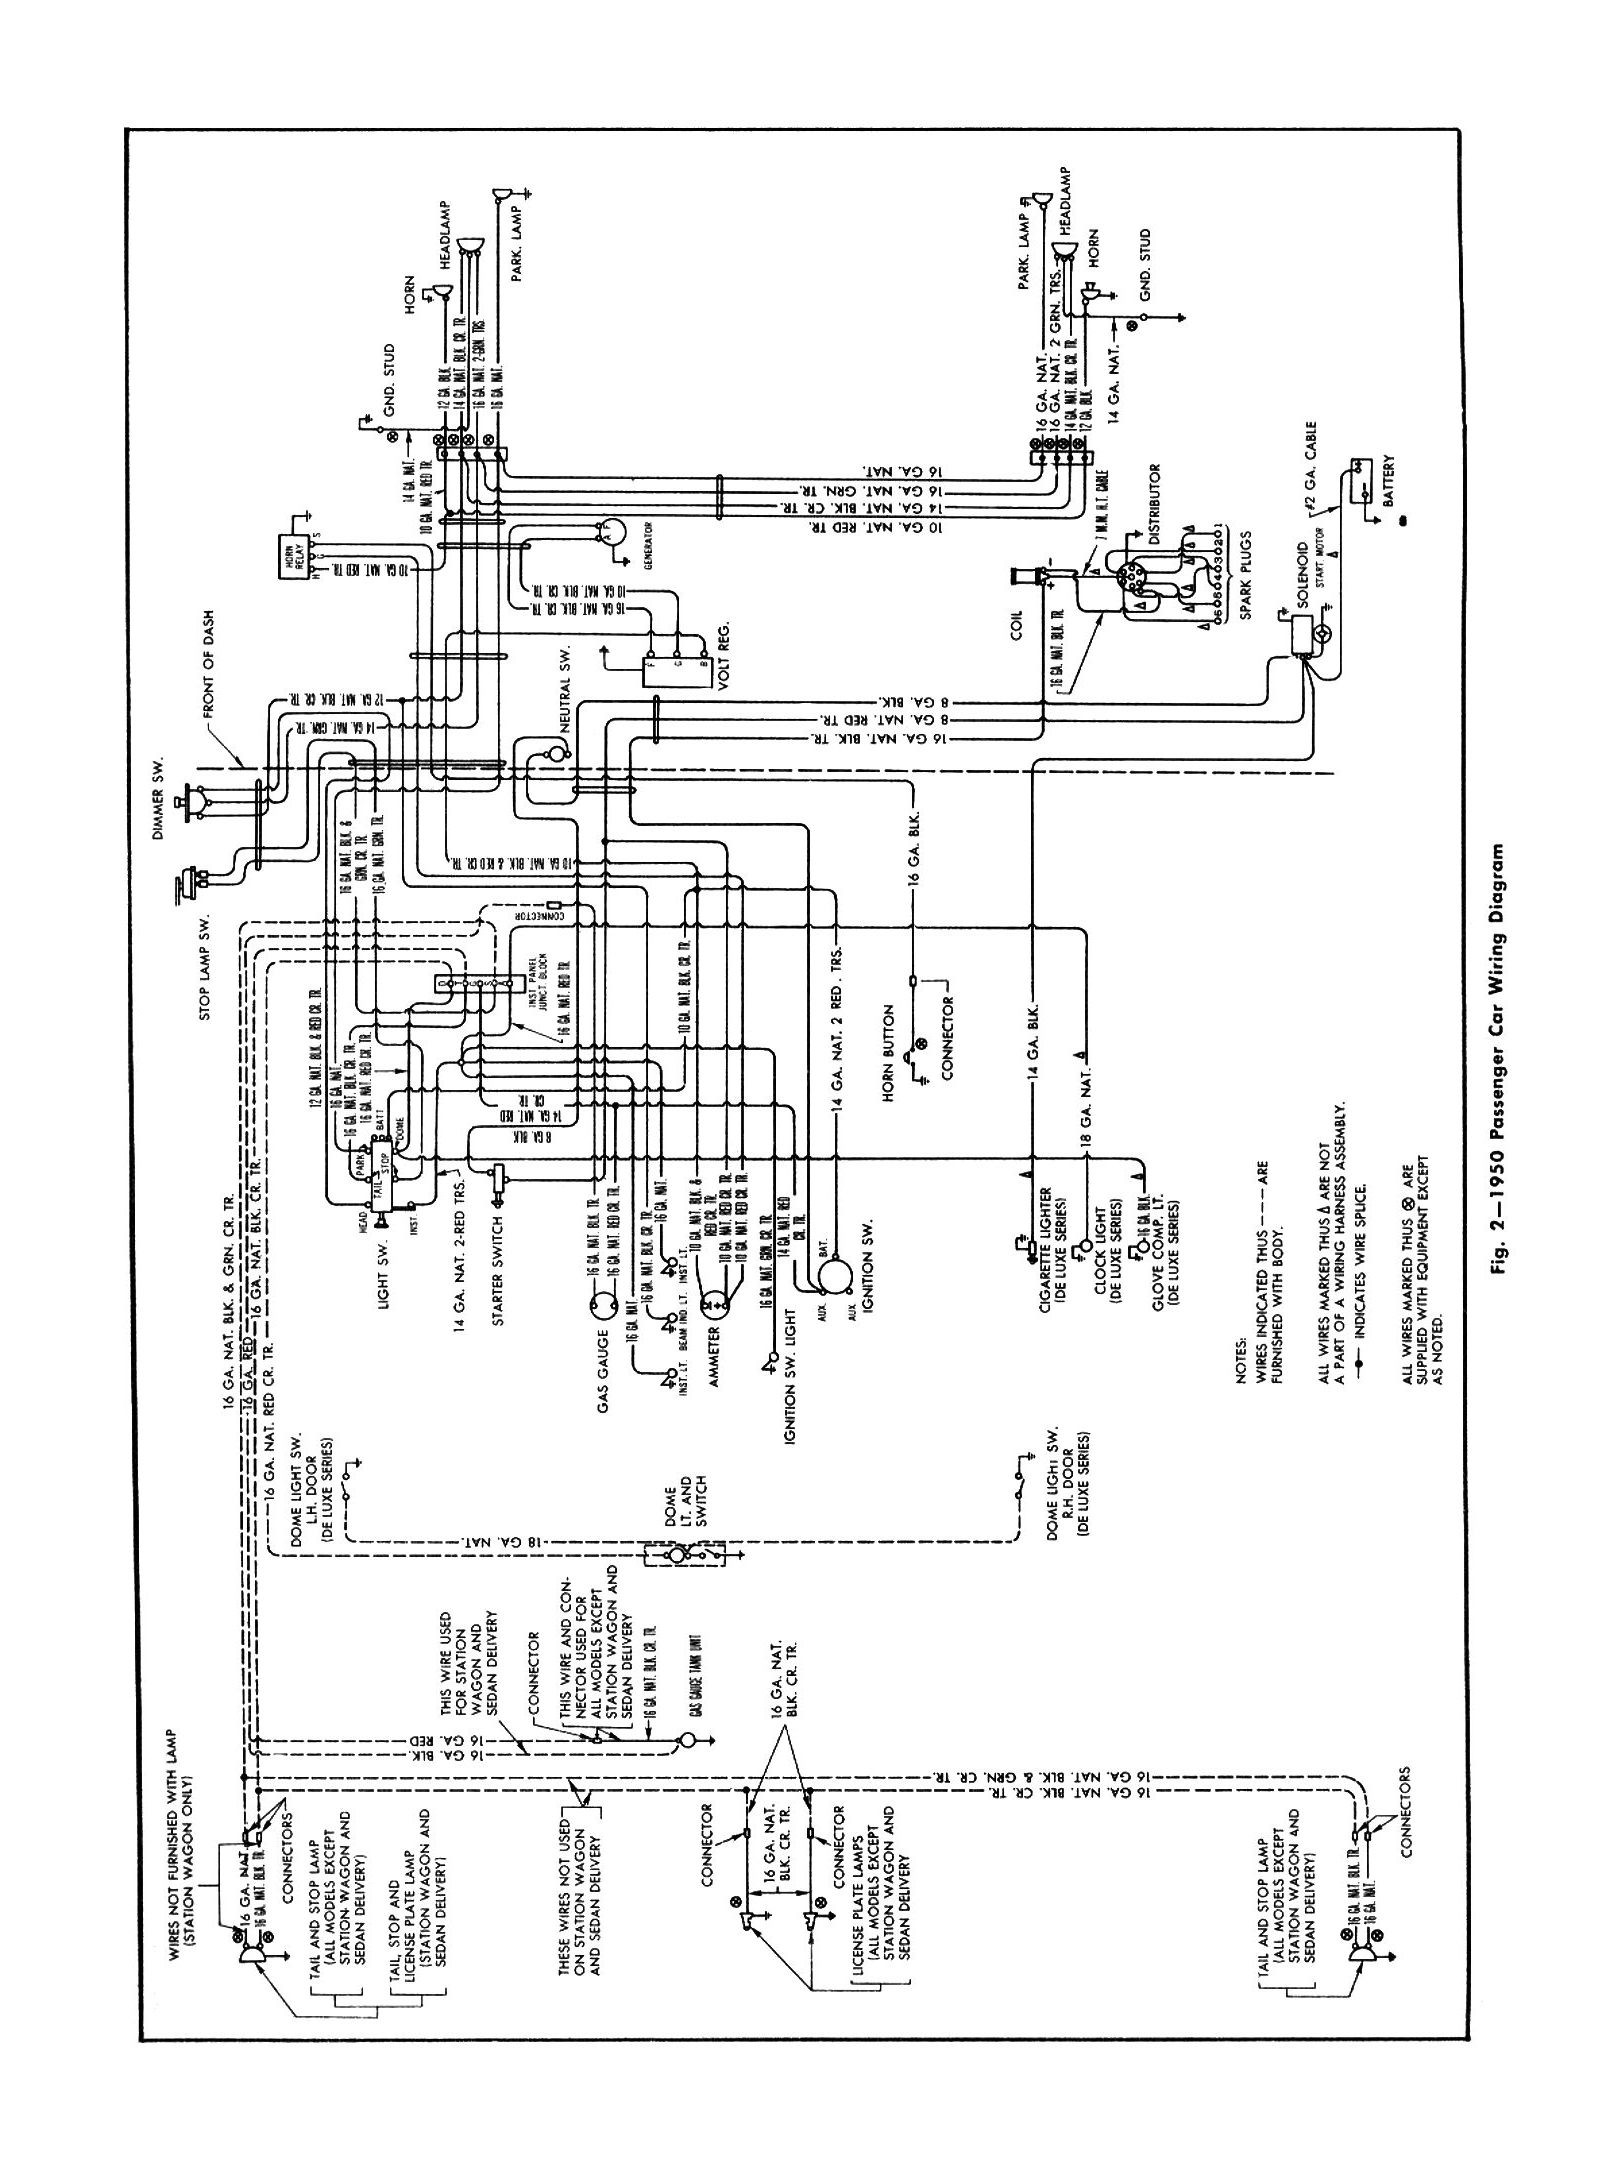 50car chevy wiring diagrams 53 ford wiring diagram at bakdesigns.co